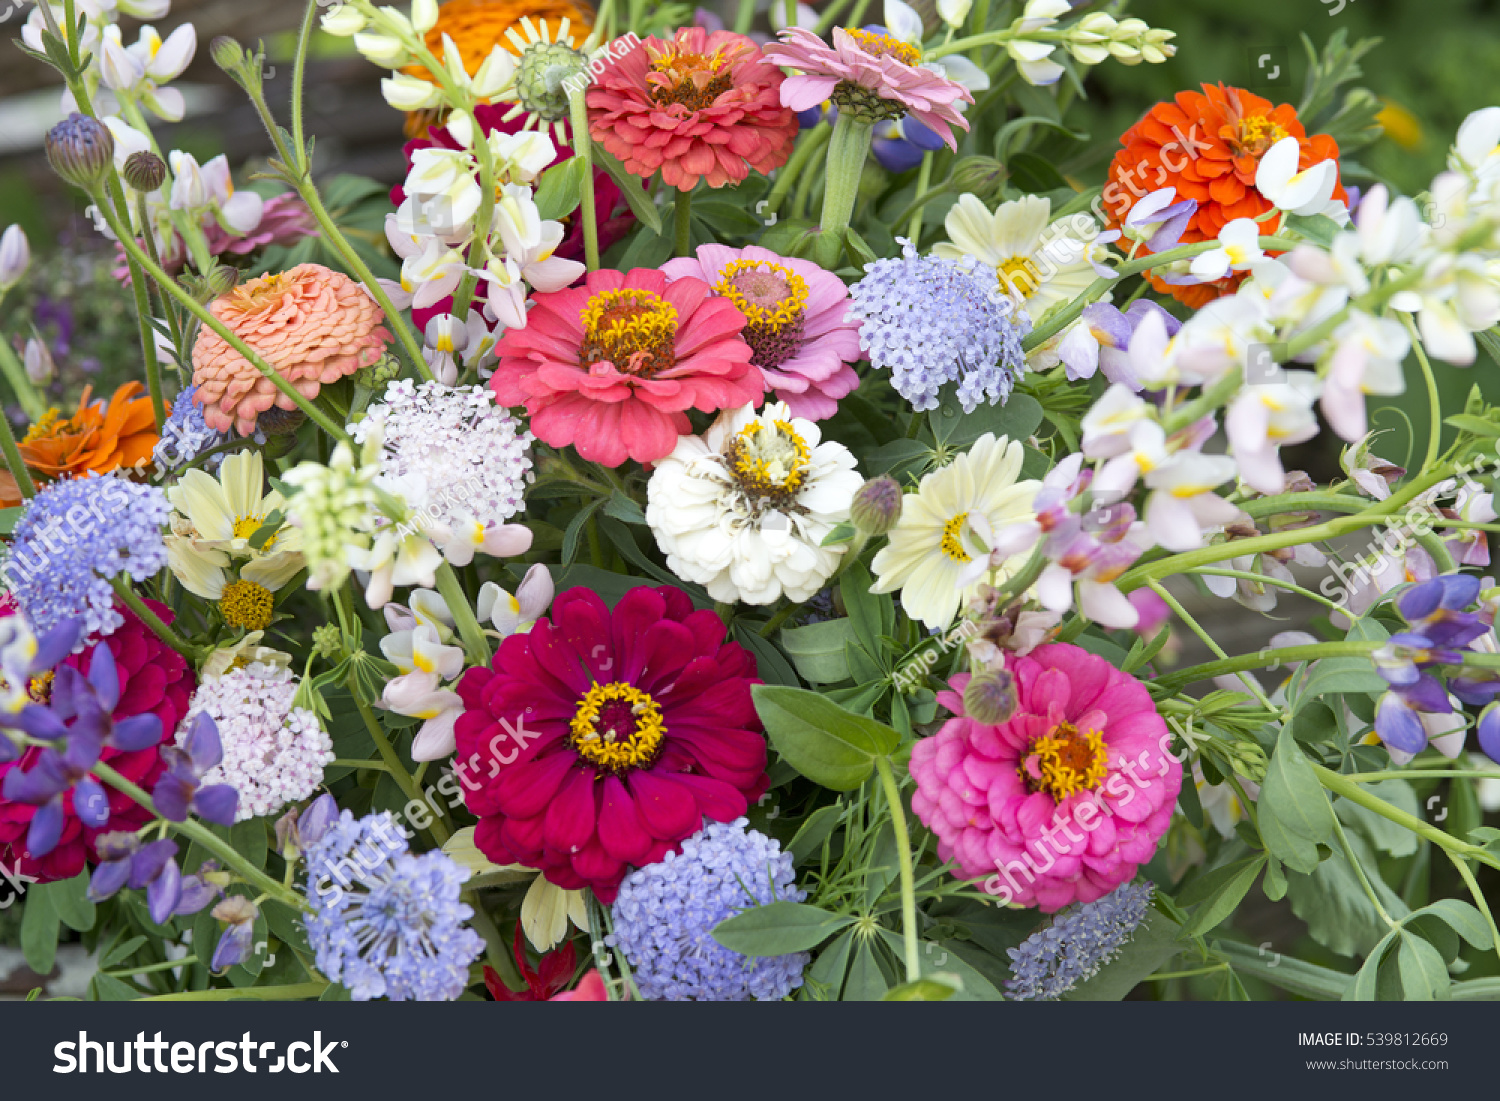 Flower bouquet vase garden setting stock photo royalty free flower bouquet vase garden setting stock photo royalty free 539812669 shutterstock izmirmasajfo